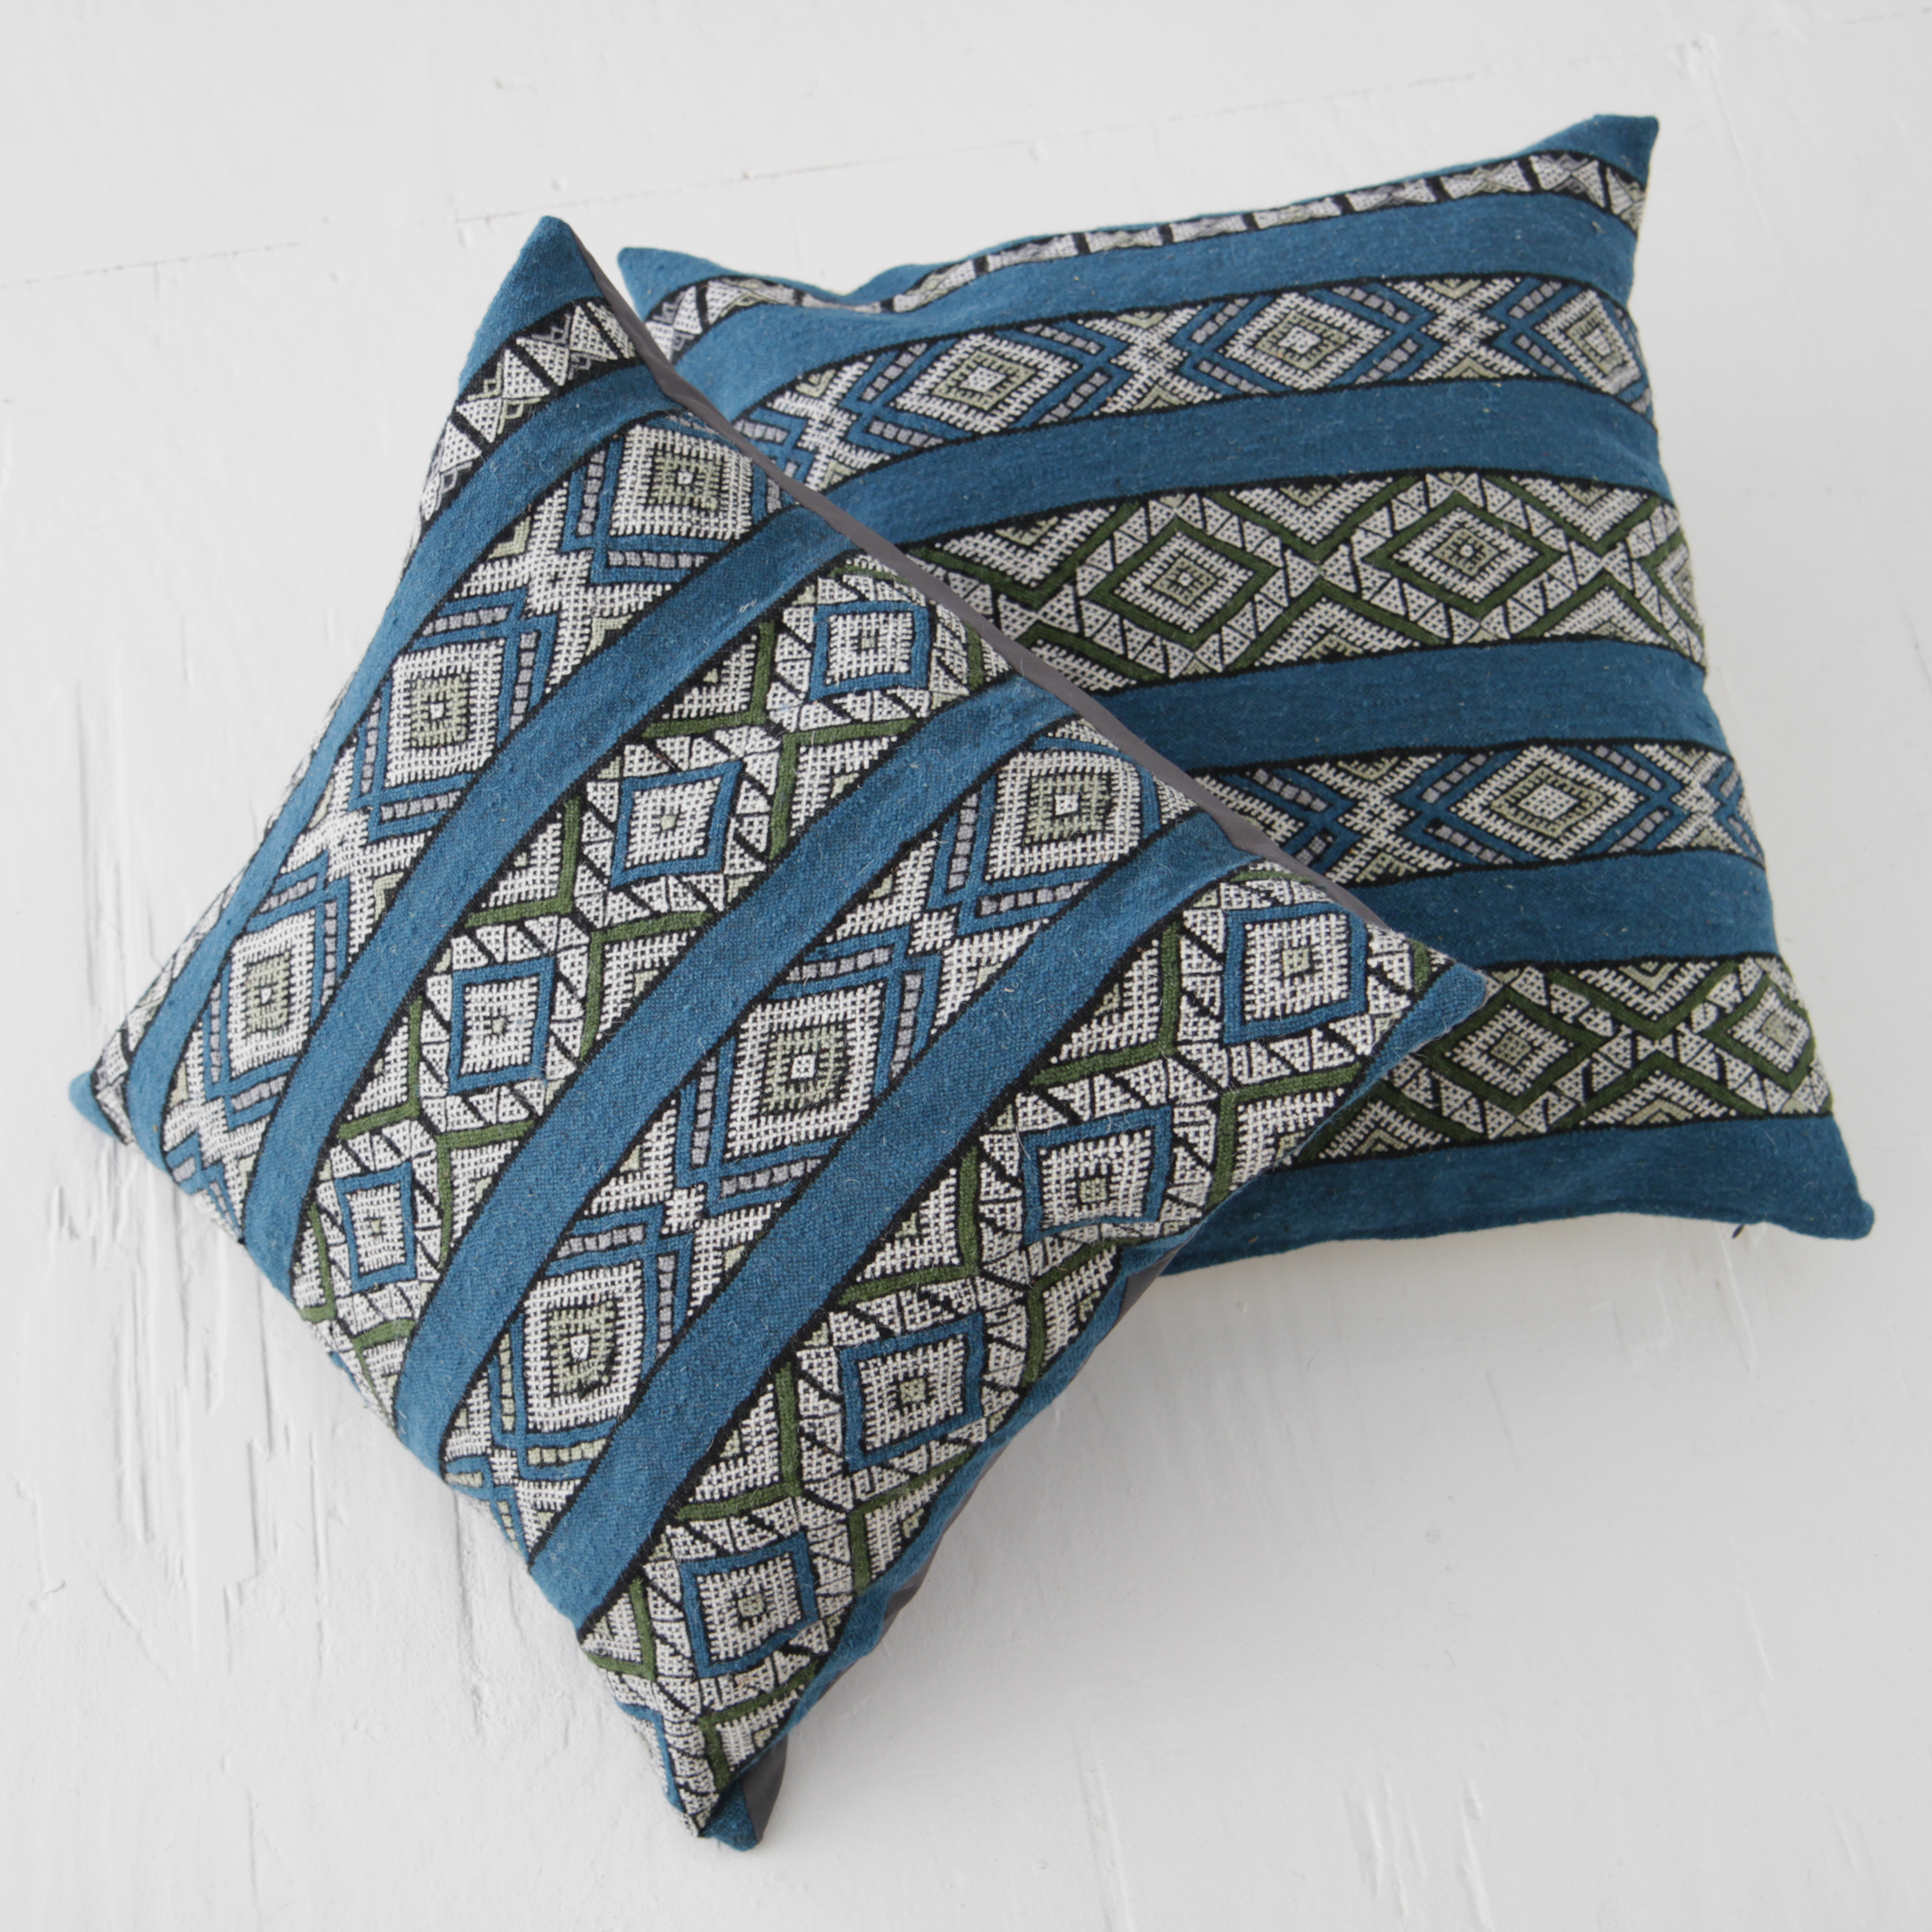 MOROCCAN PILLOW COLLECTION  Made in Morocco's High Atlas region